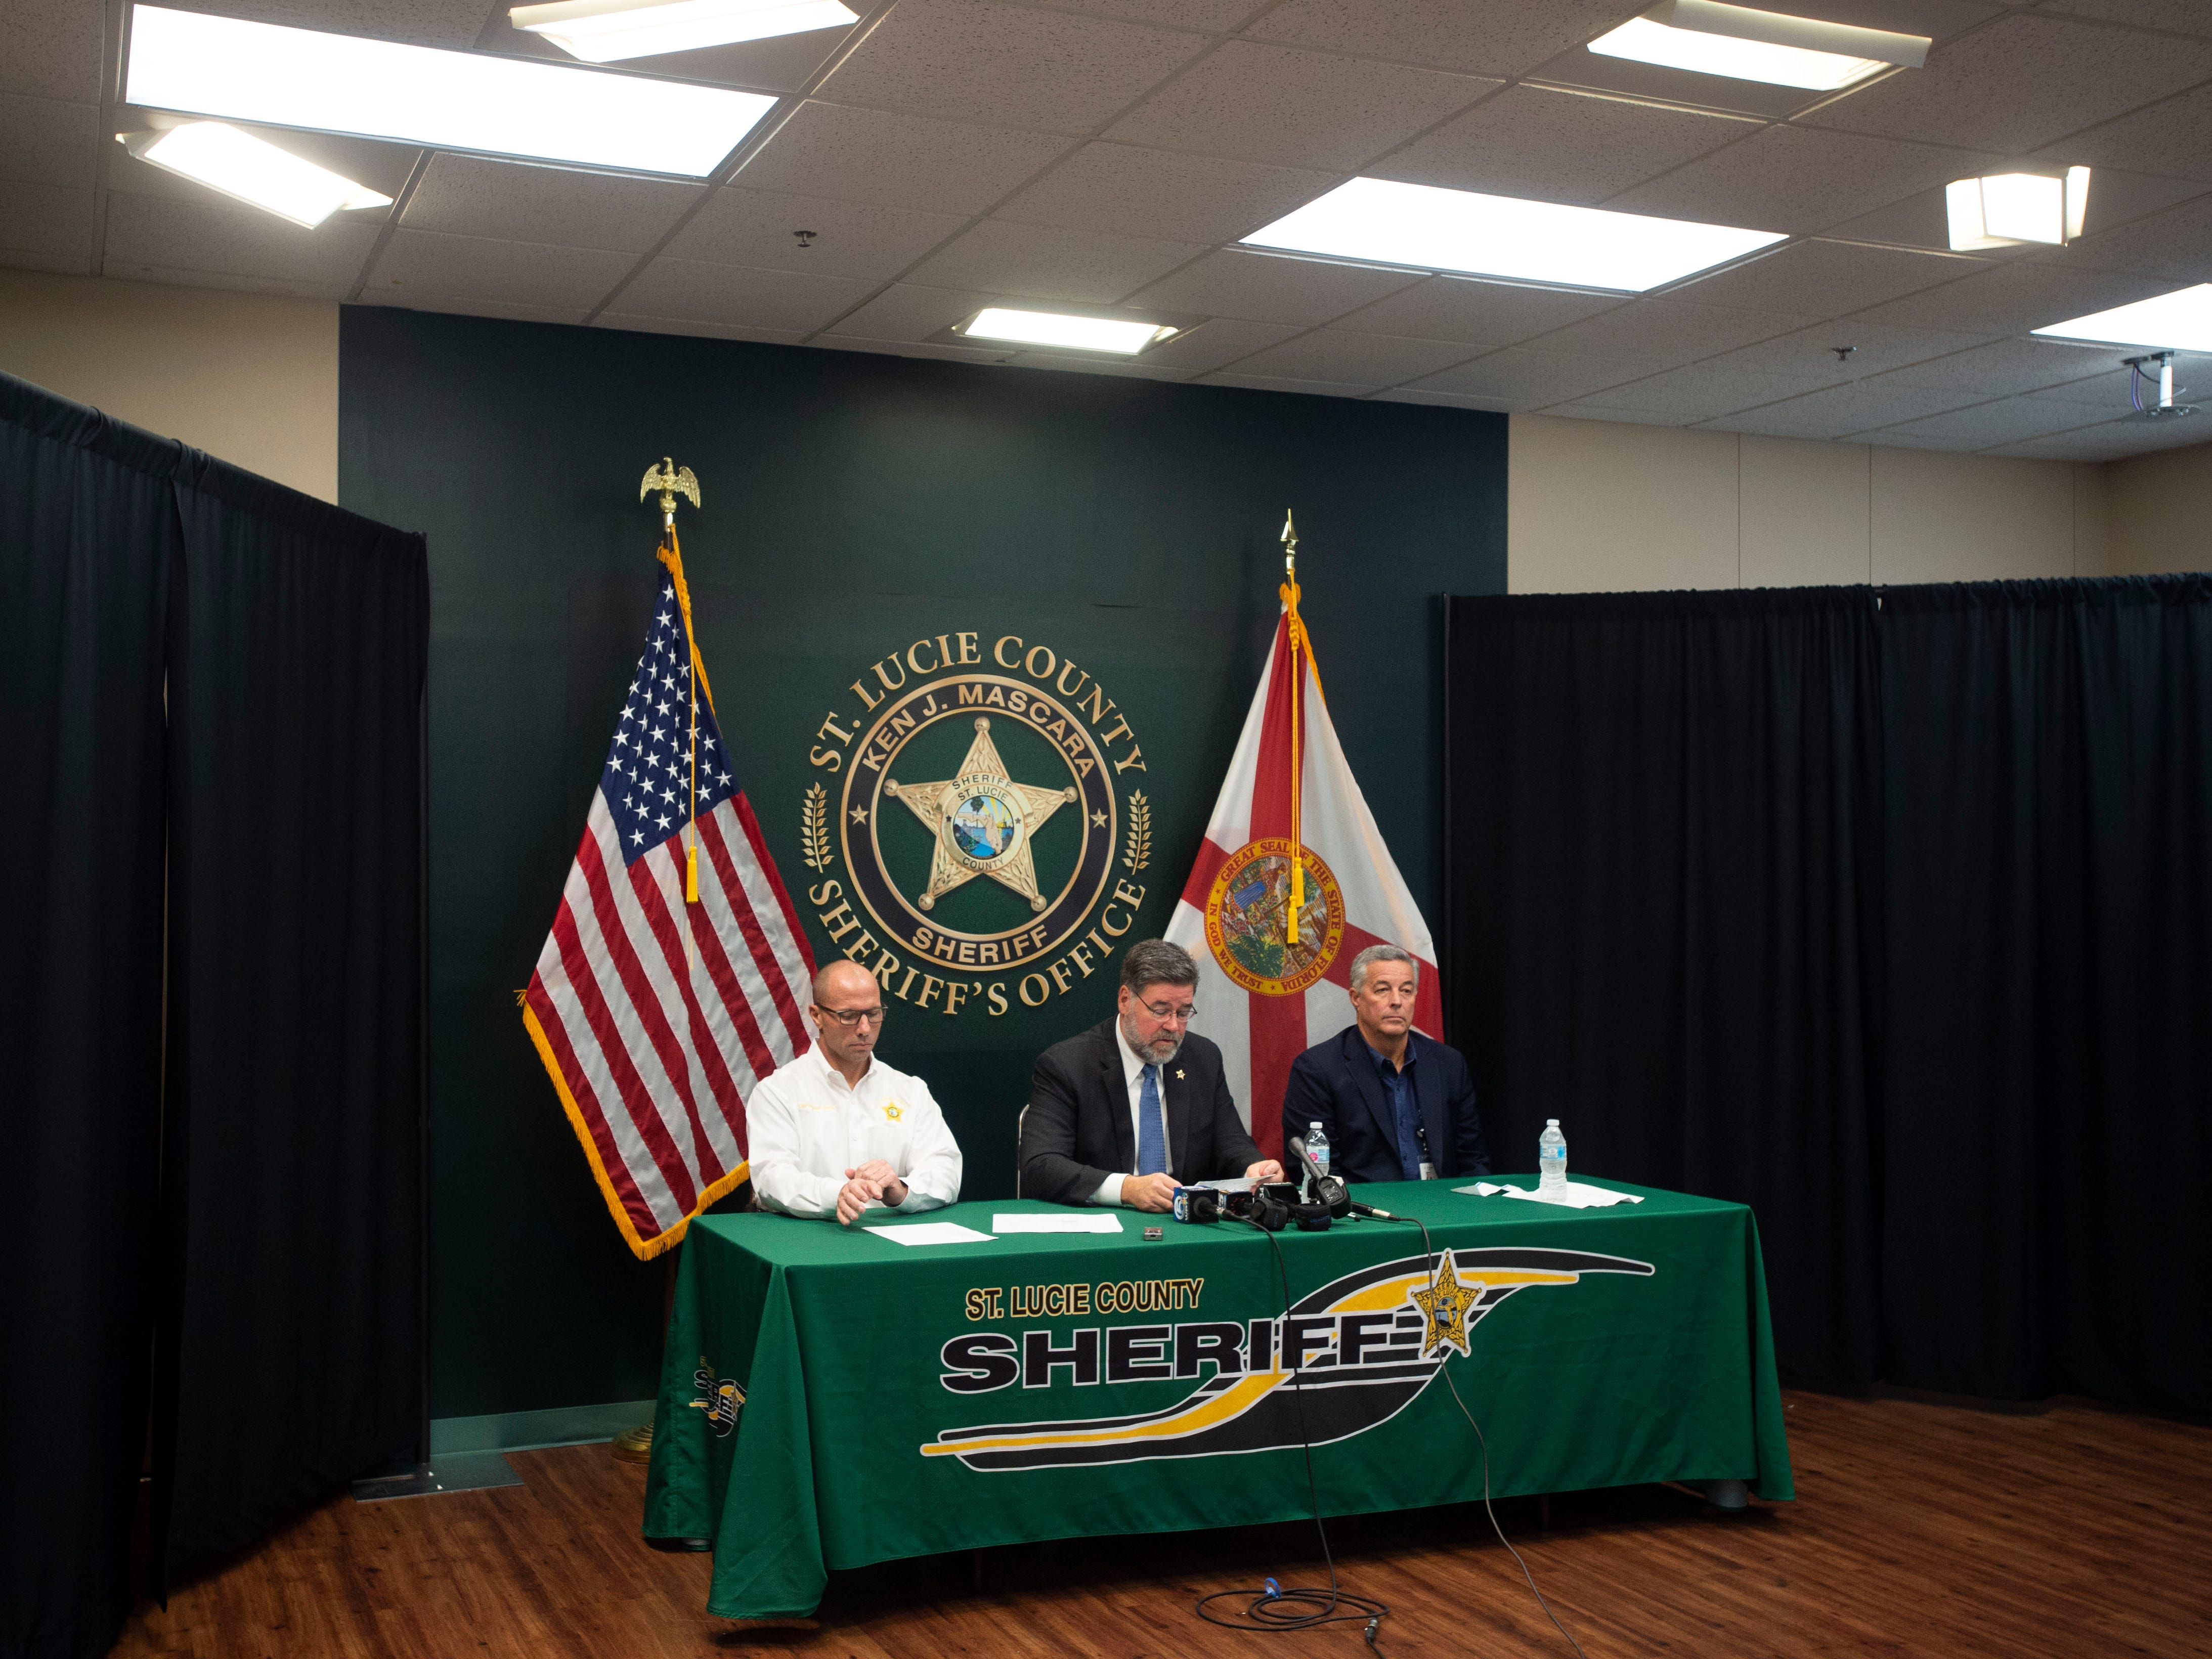 """Every threat on a school campus is taken seriously,"" said St. Lucie County Sheriff Ken Mascara during a news conference with St. Lucie County Public Schools Superintendent Wayne Gent and Captain Brian Hester on Friday, Jan. 11, 2019, at the St. Lucie County Sheriff's Office in Fort Pierce. Since the mass shooting at Marjory Stoneman Douglas High School last February in Parkland, Gent said the school district has mandated single points of entry at all schools, upgraded security systems and fencing around campuses and emphasized training for students and school staff."